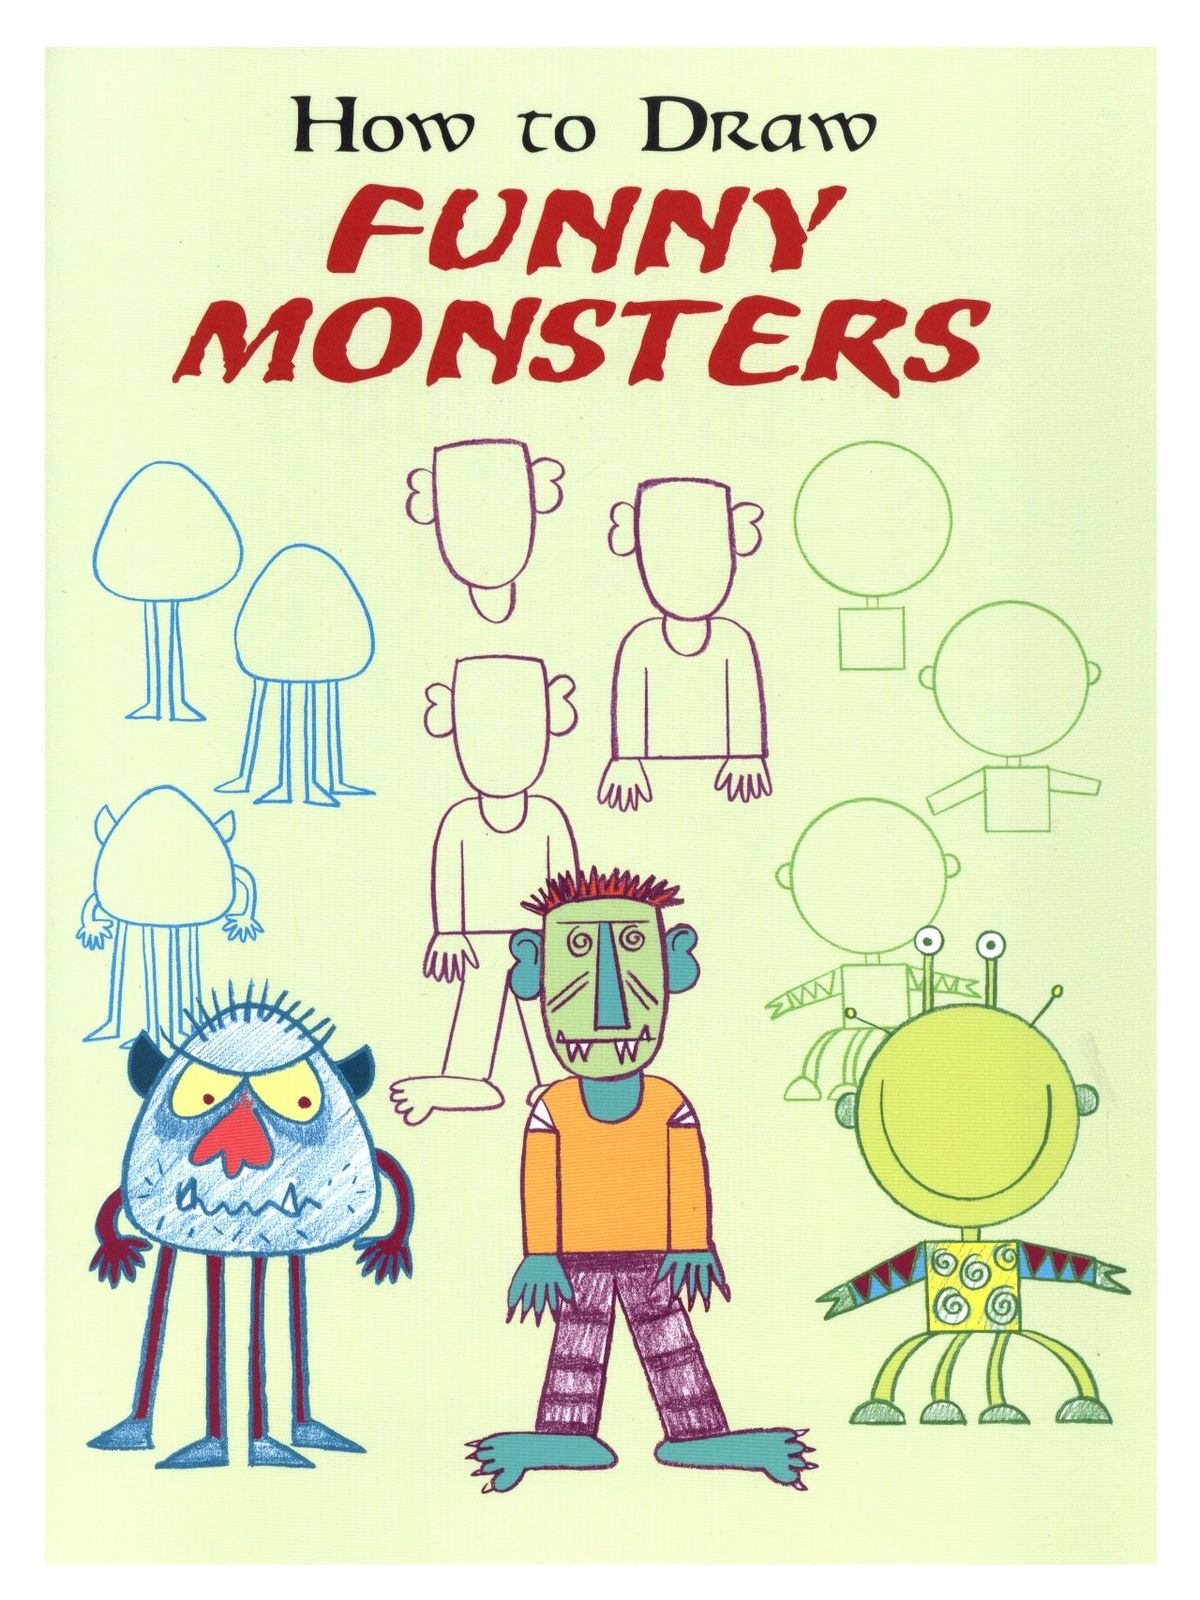 How to Draw Funny Monsters